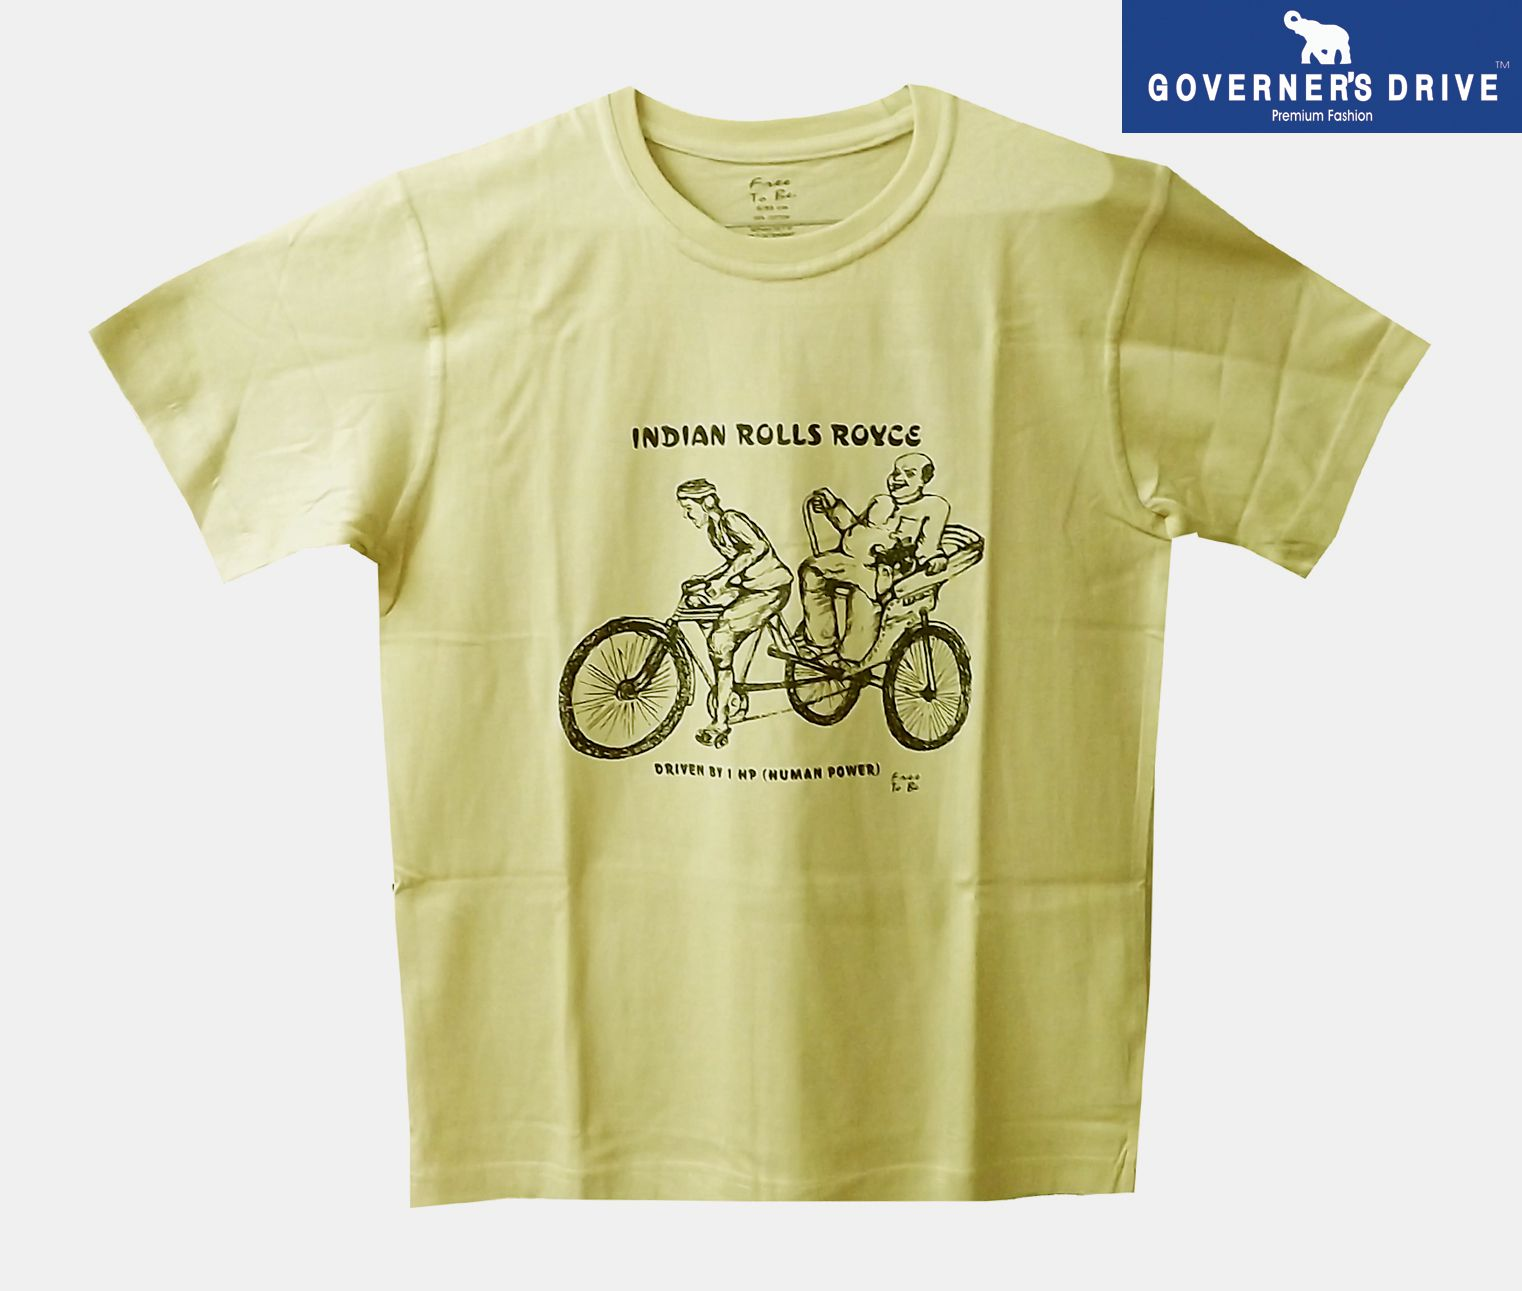 GOVERNER'S DRIVE Beige Round T-Shirt Pack of 1